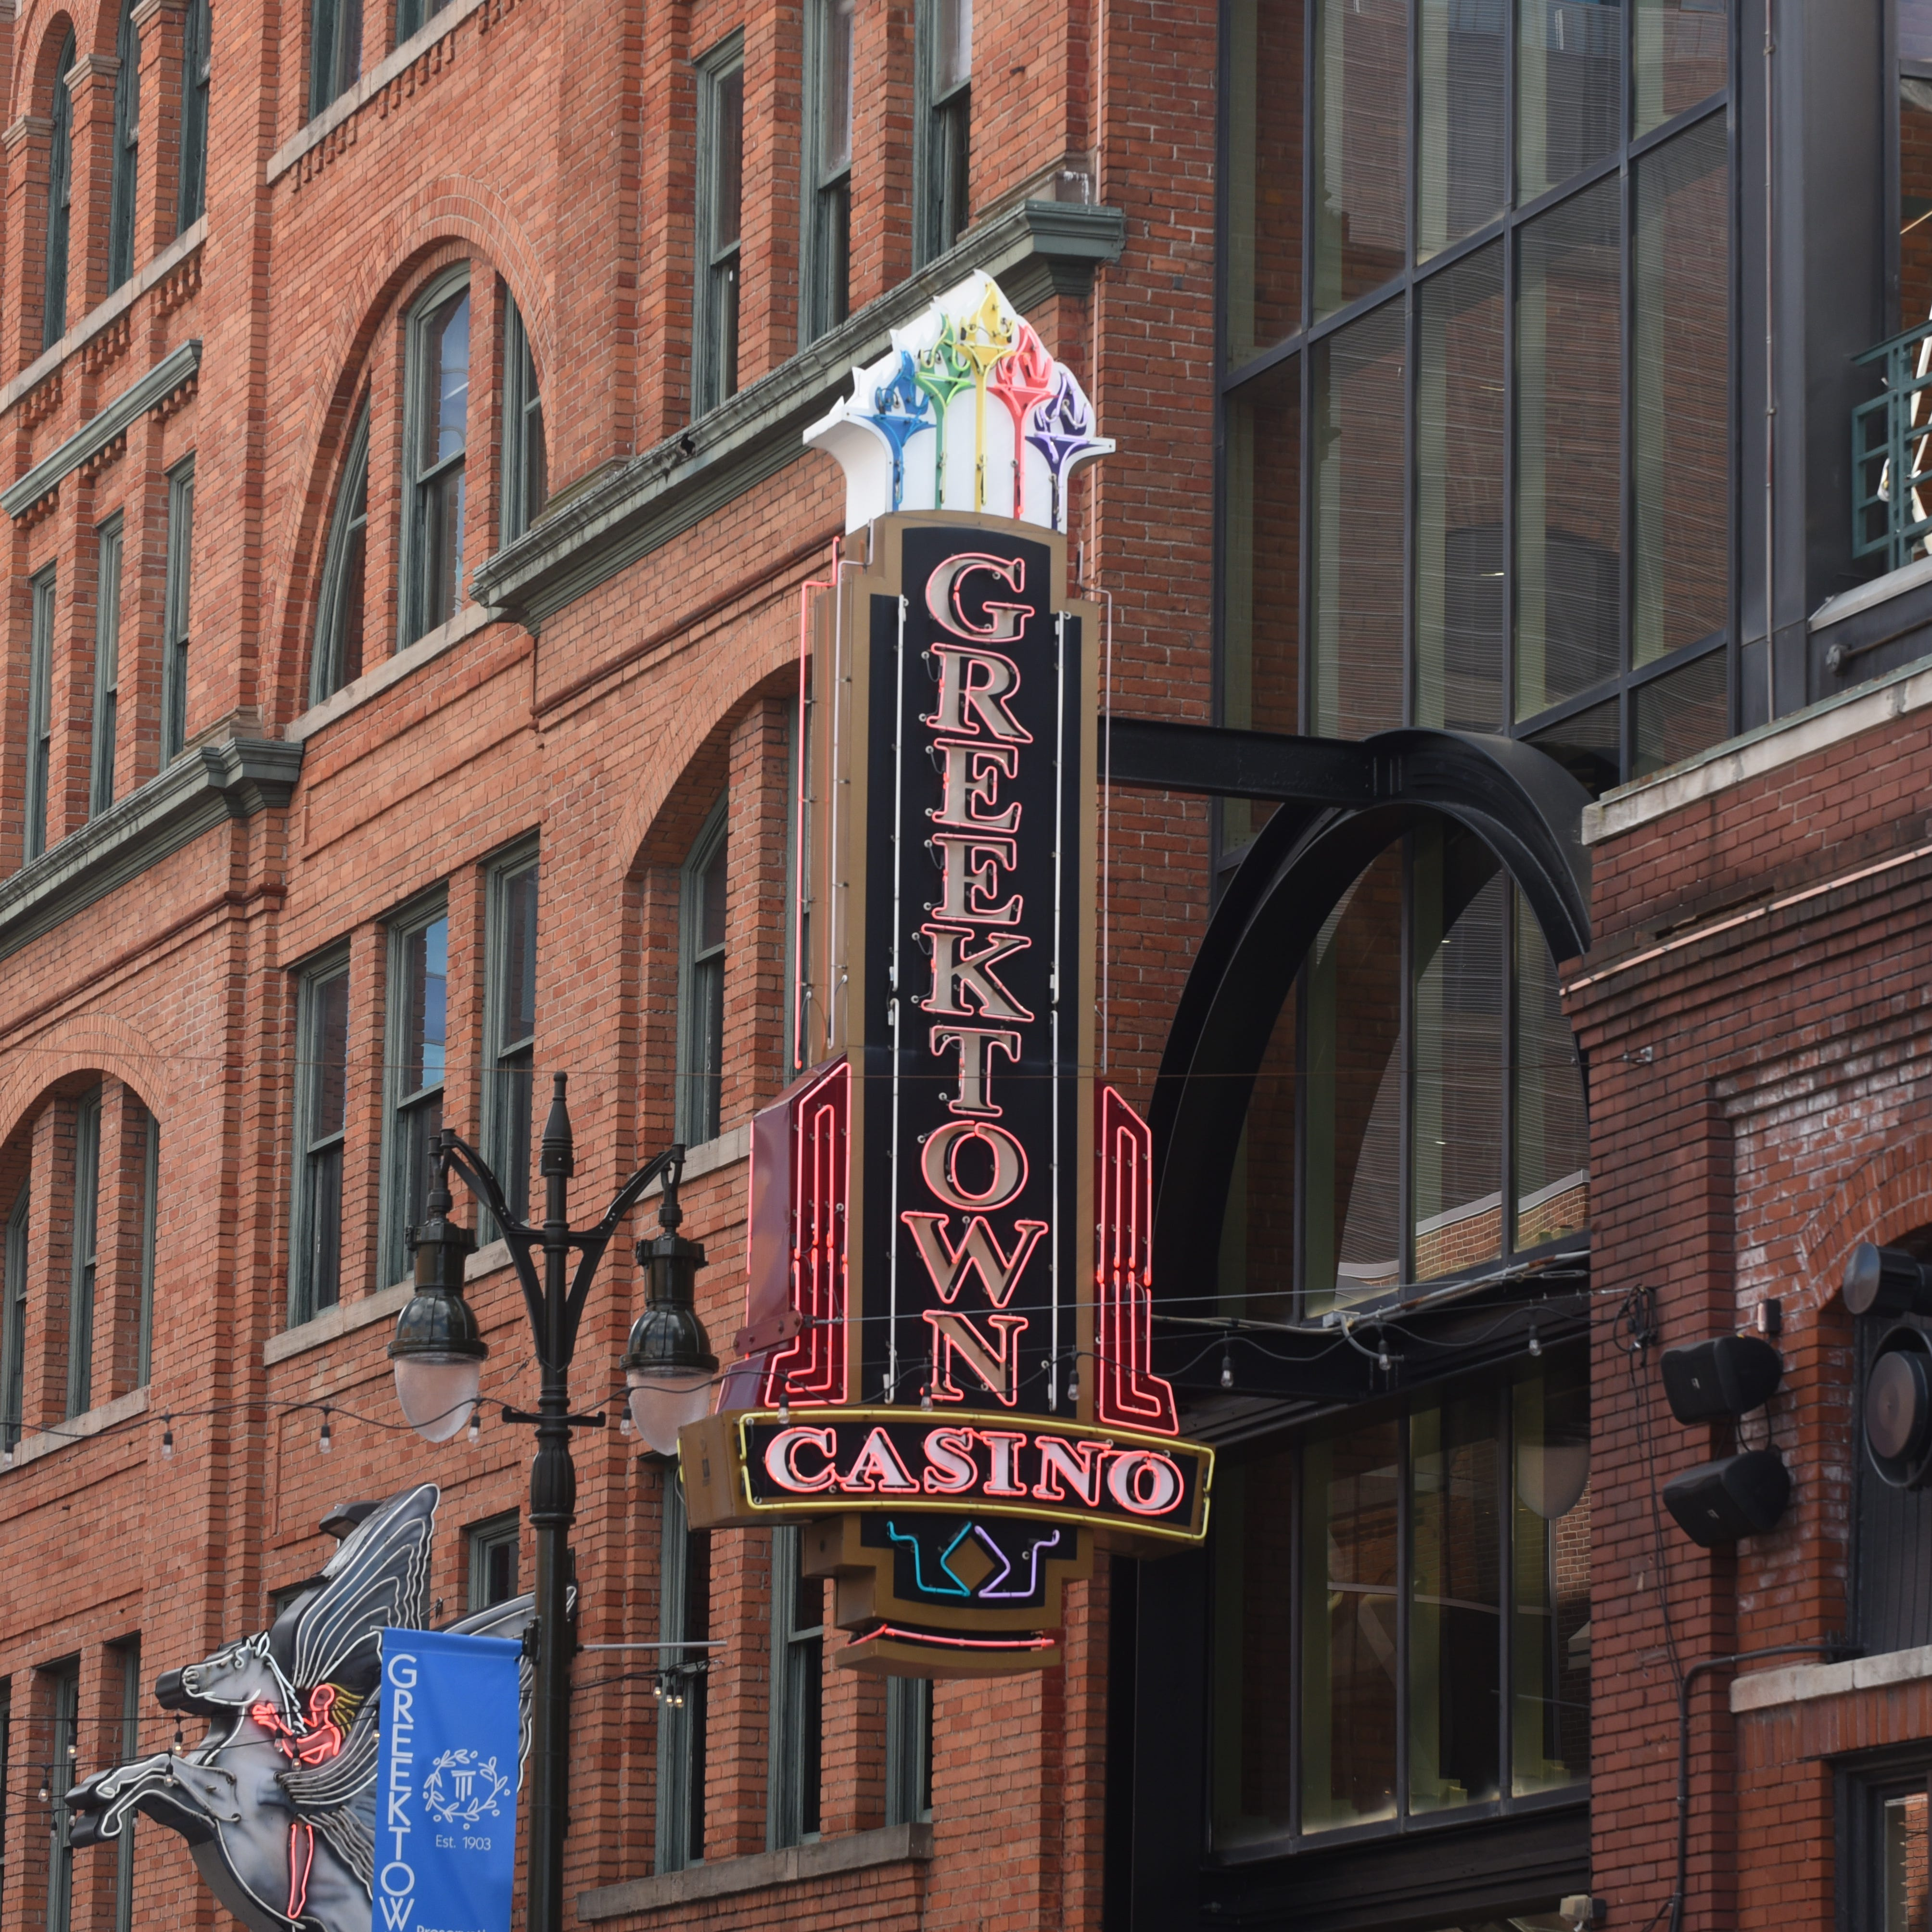 Gilbert selling Greektown casino for $1 billion